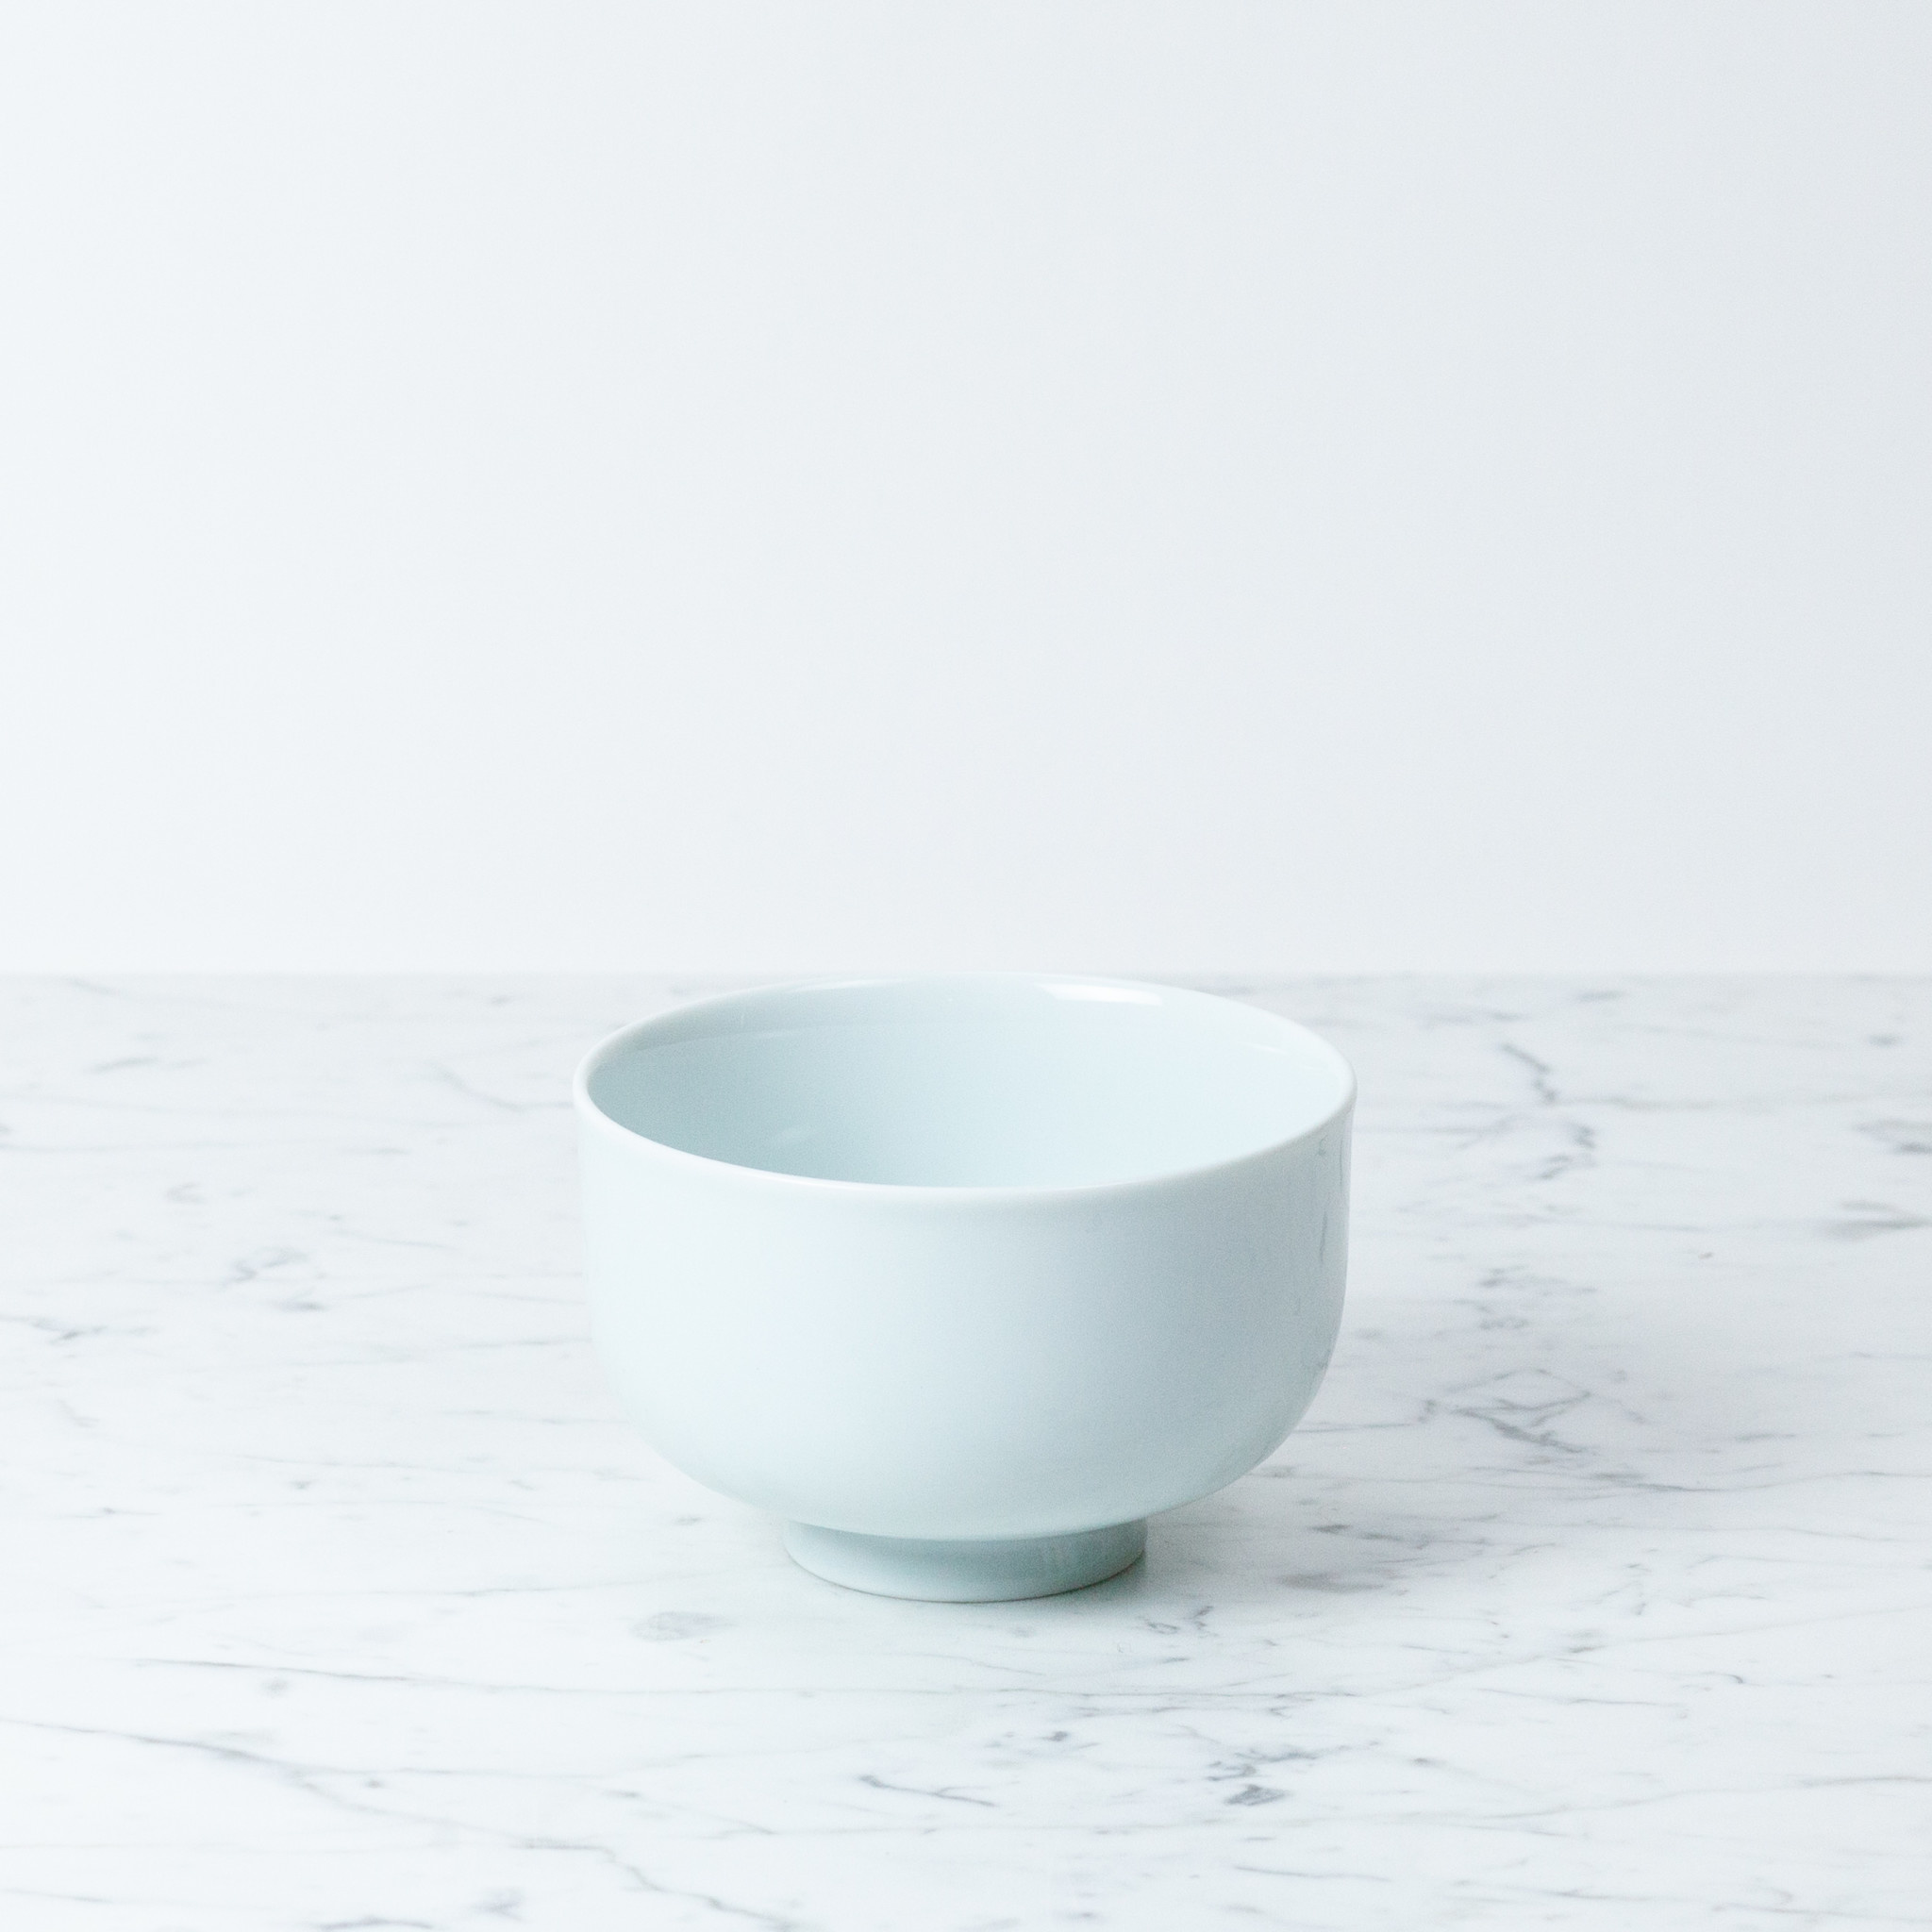 MIZU MIZU mizu-mizu Curved Bowl with Foot - Bluish White - Medium - 5""